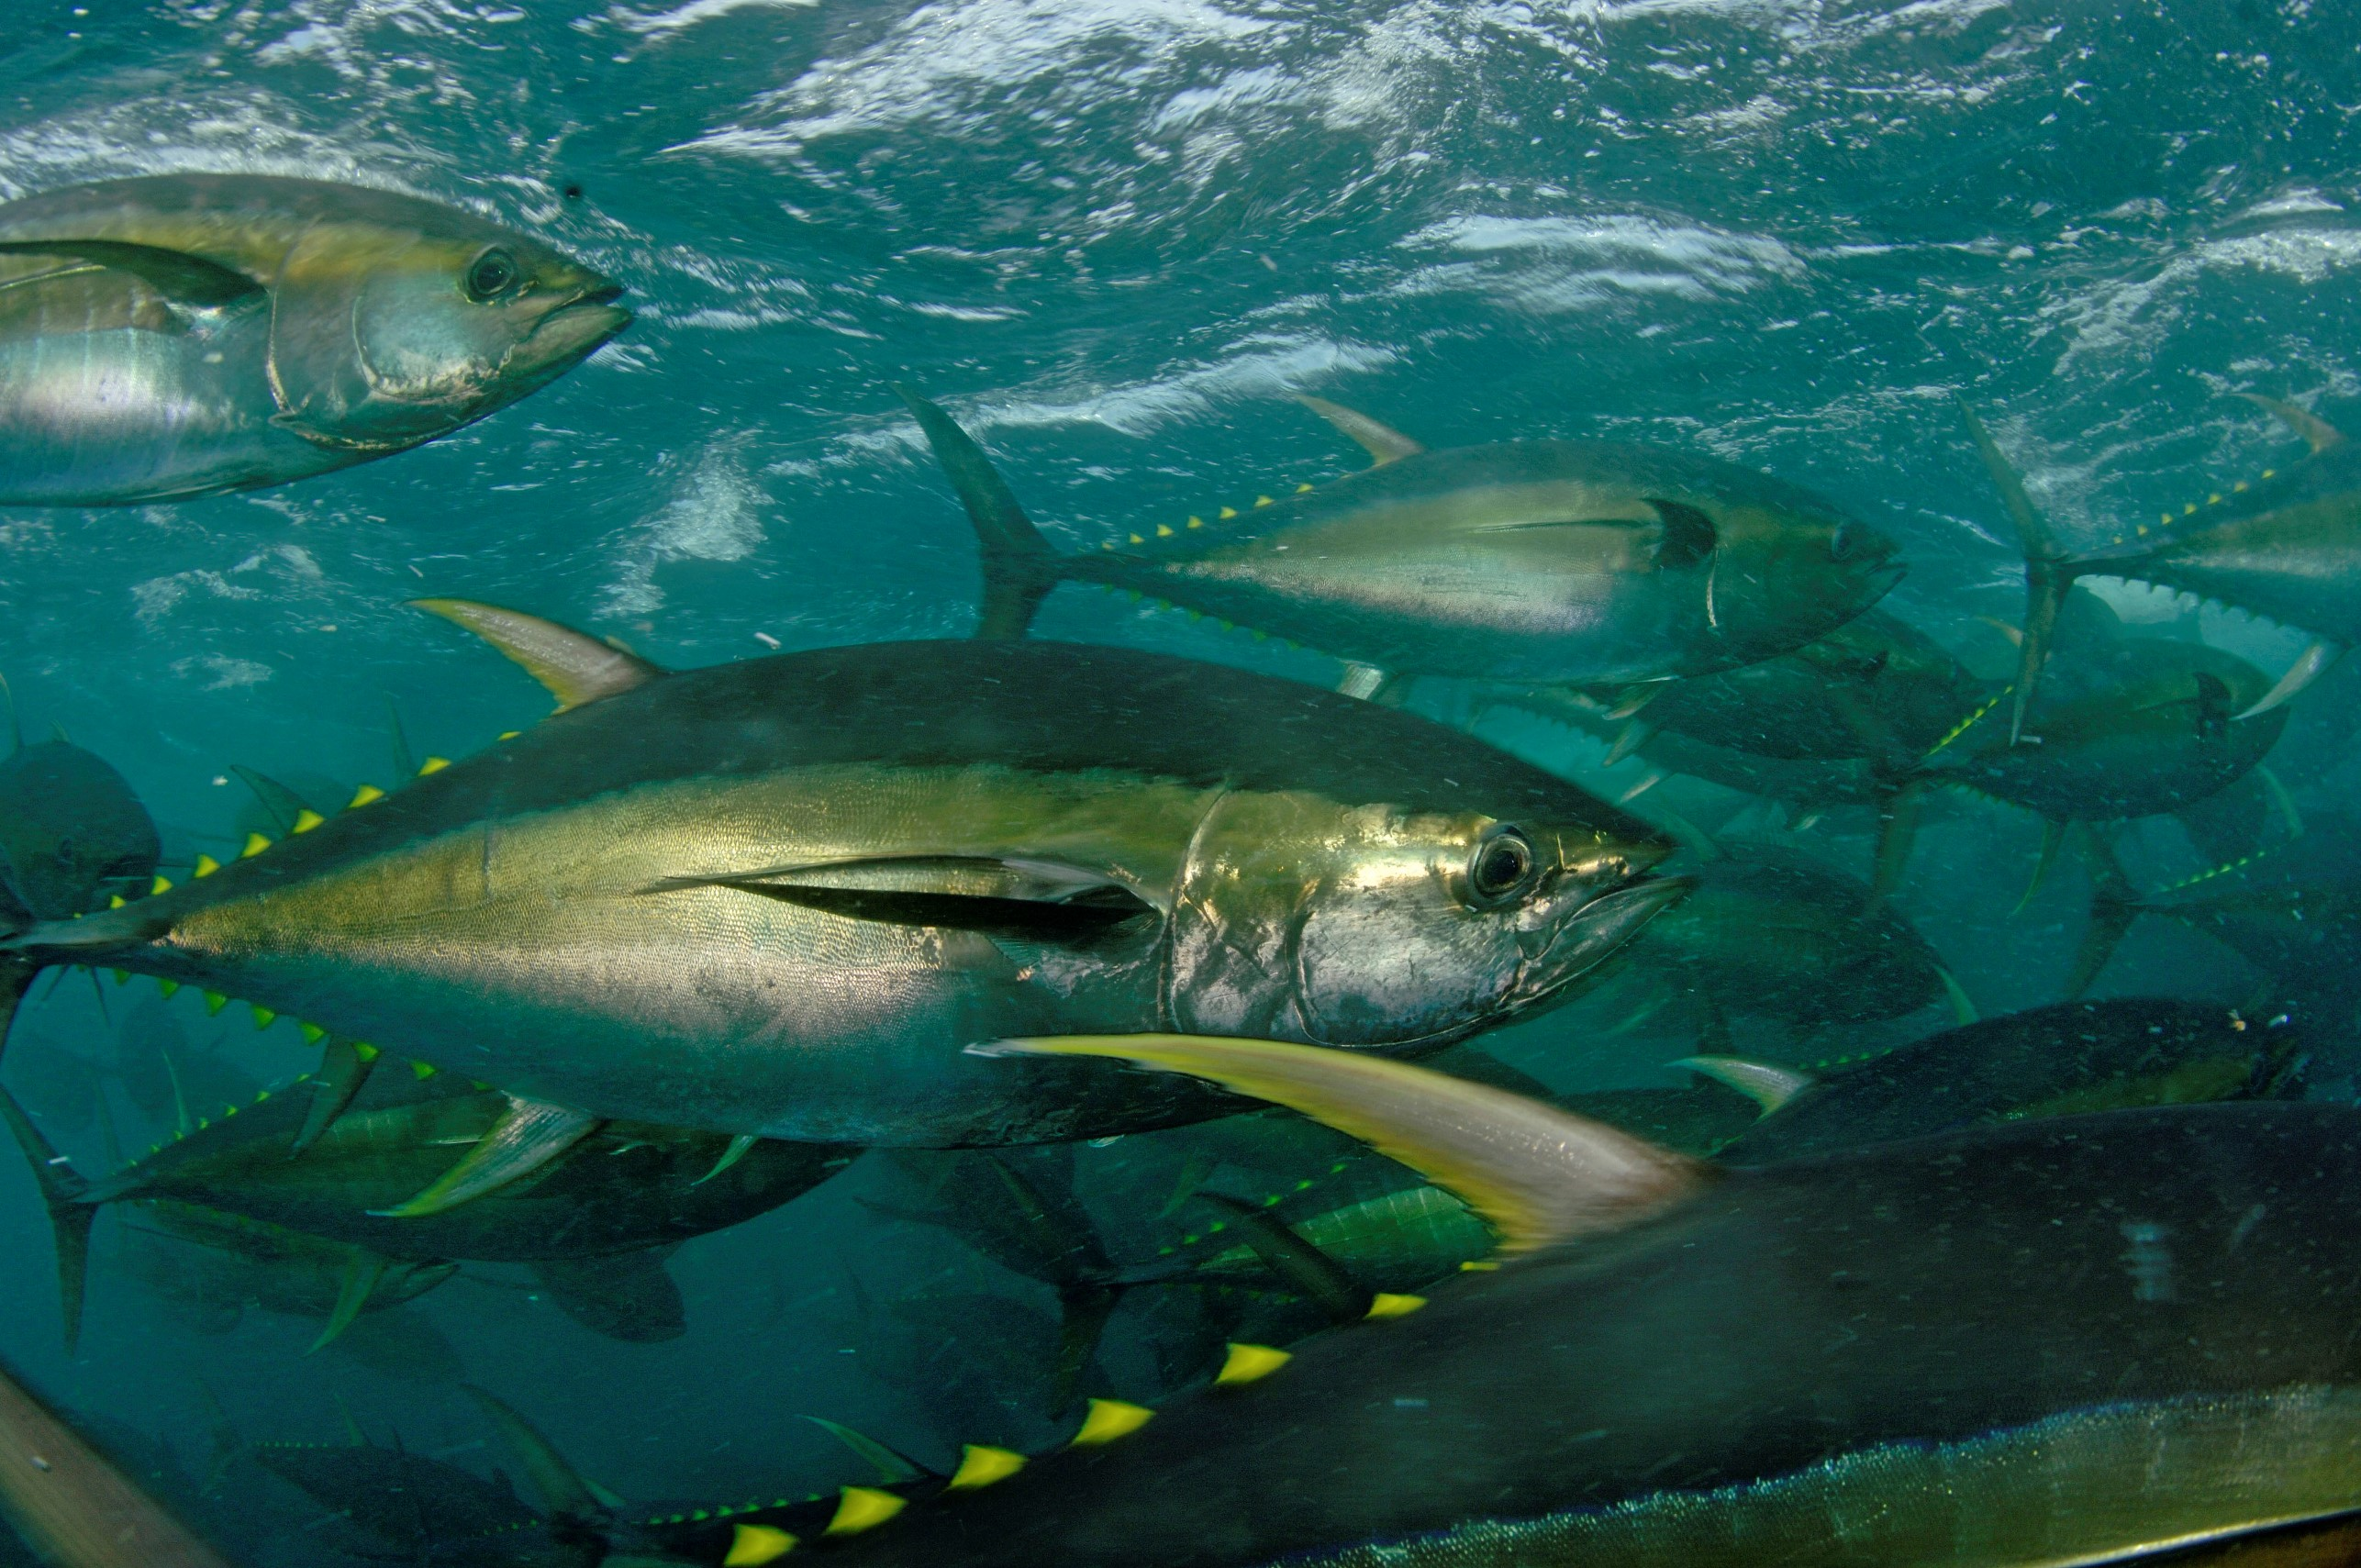 Tunas in the ocean wallpaper